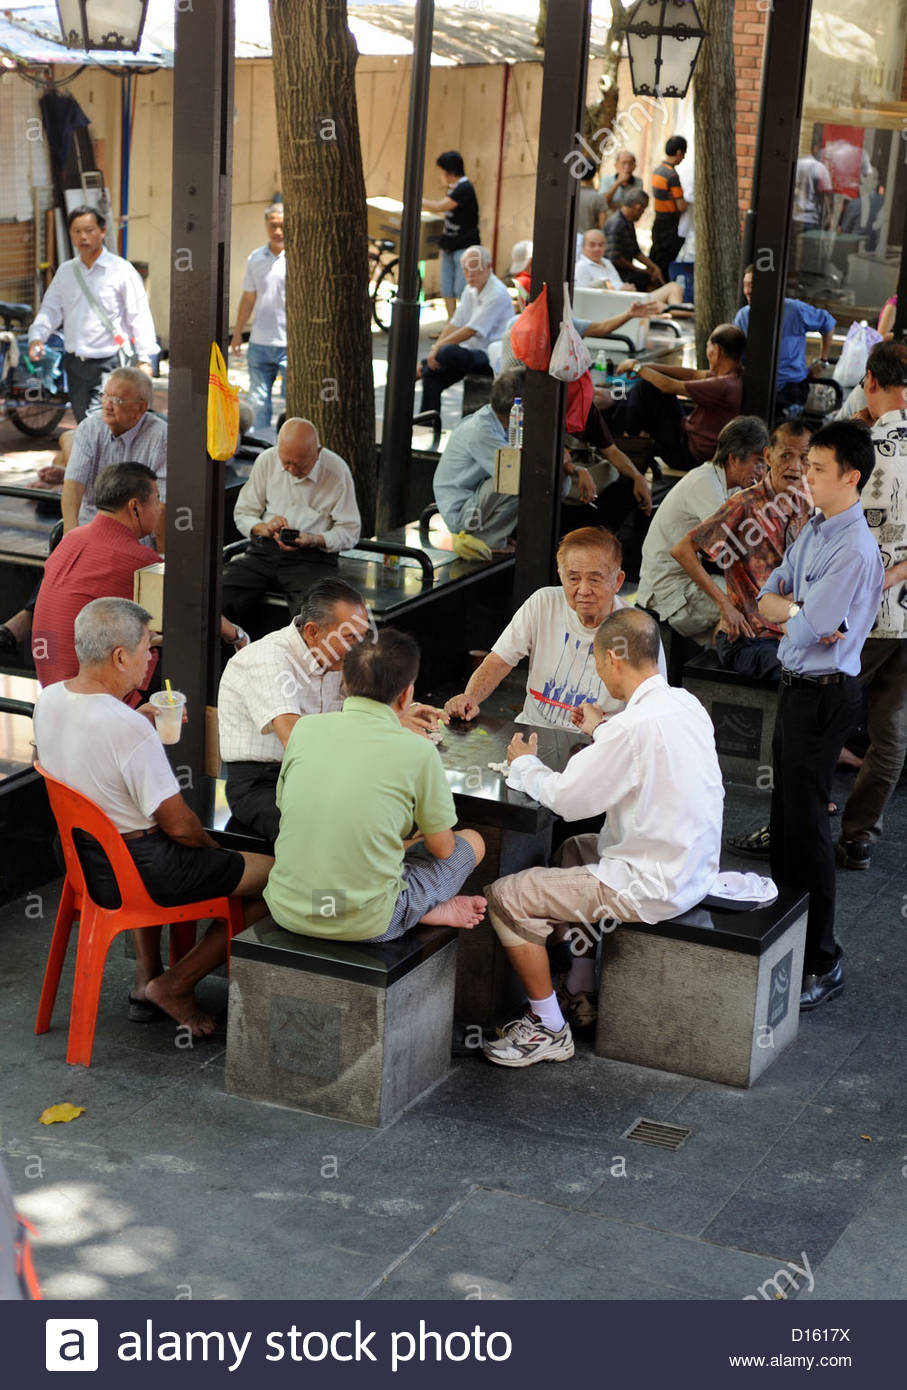 Singapore - Elderly gentlemen play a boardgame (majong?) in Chinatown. - Stock Image